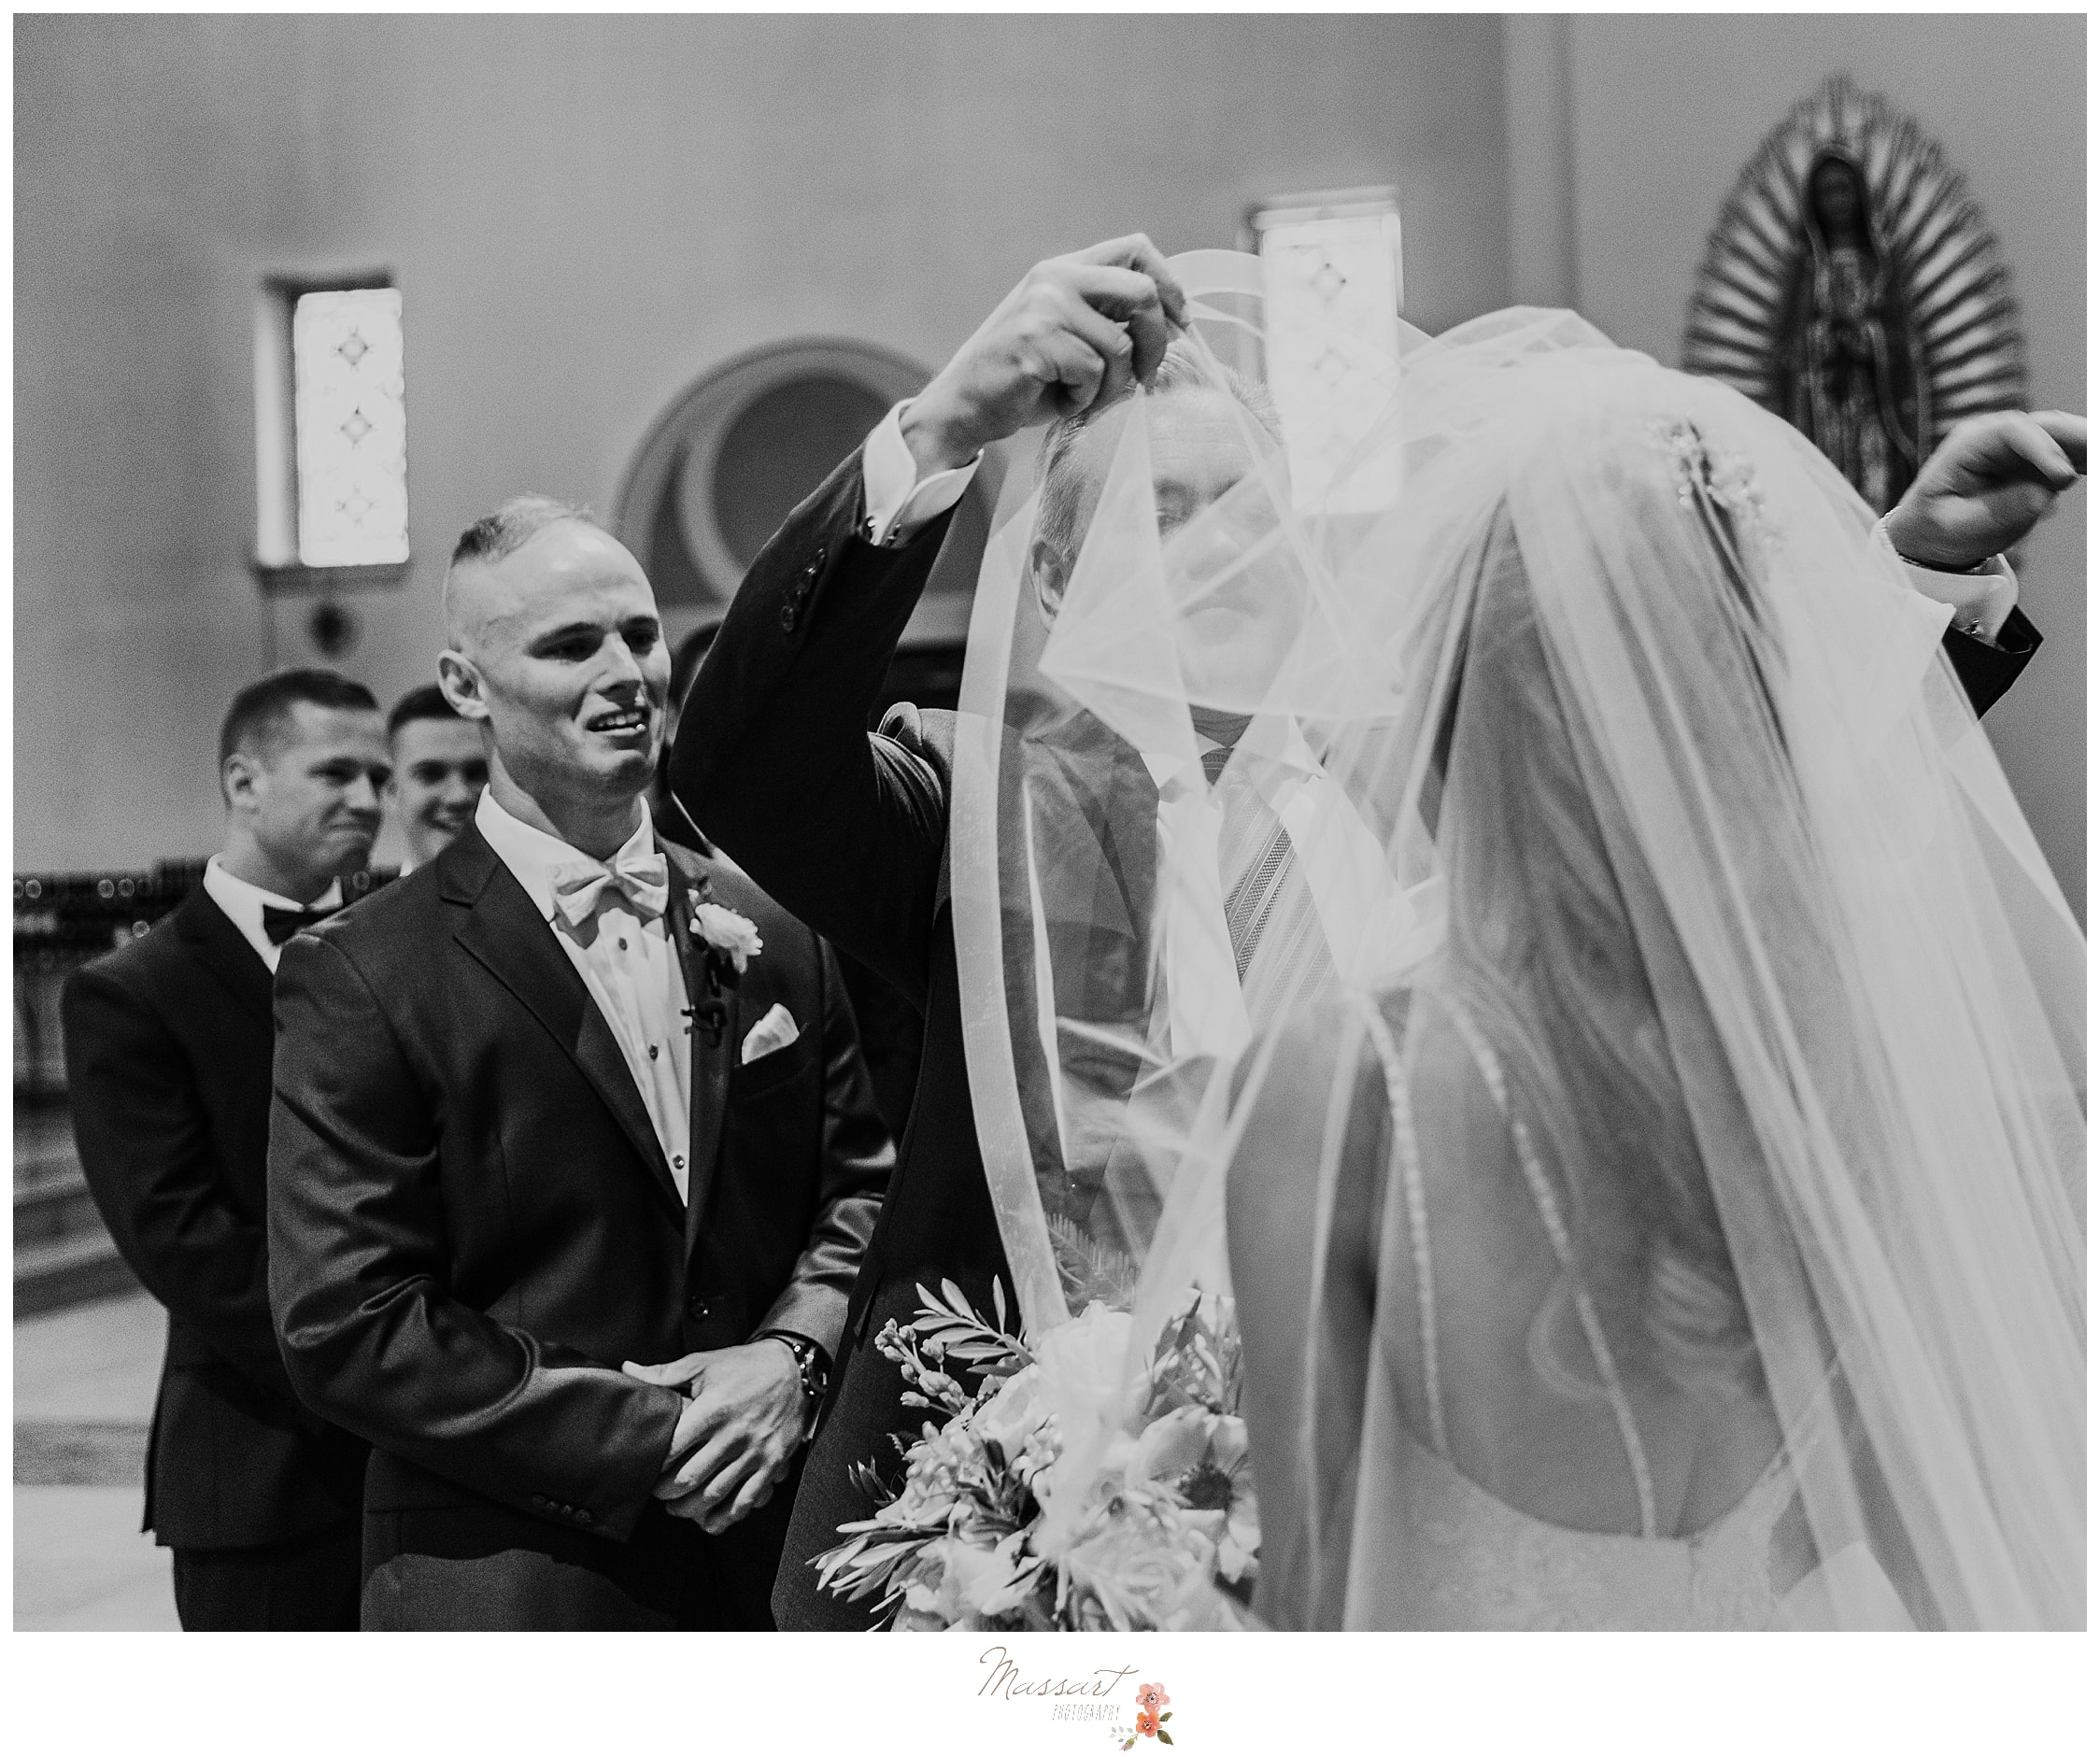 Massart Photography captures father lifting bride's veil before wedding ceremony in Rhode Island